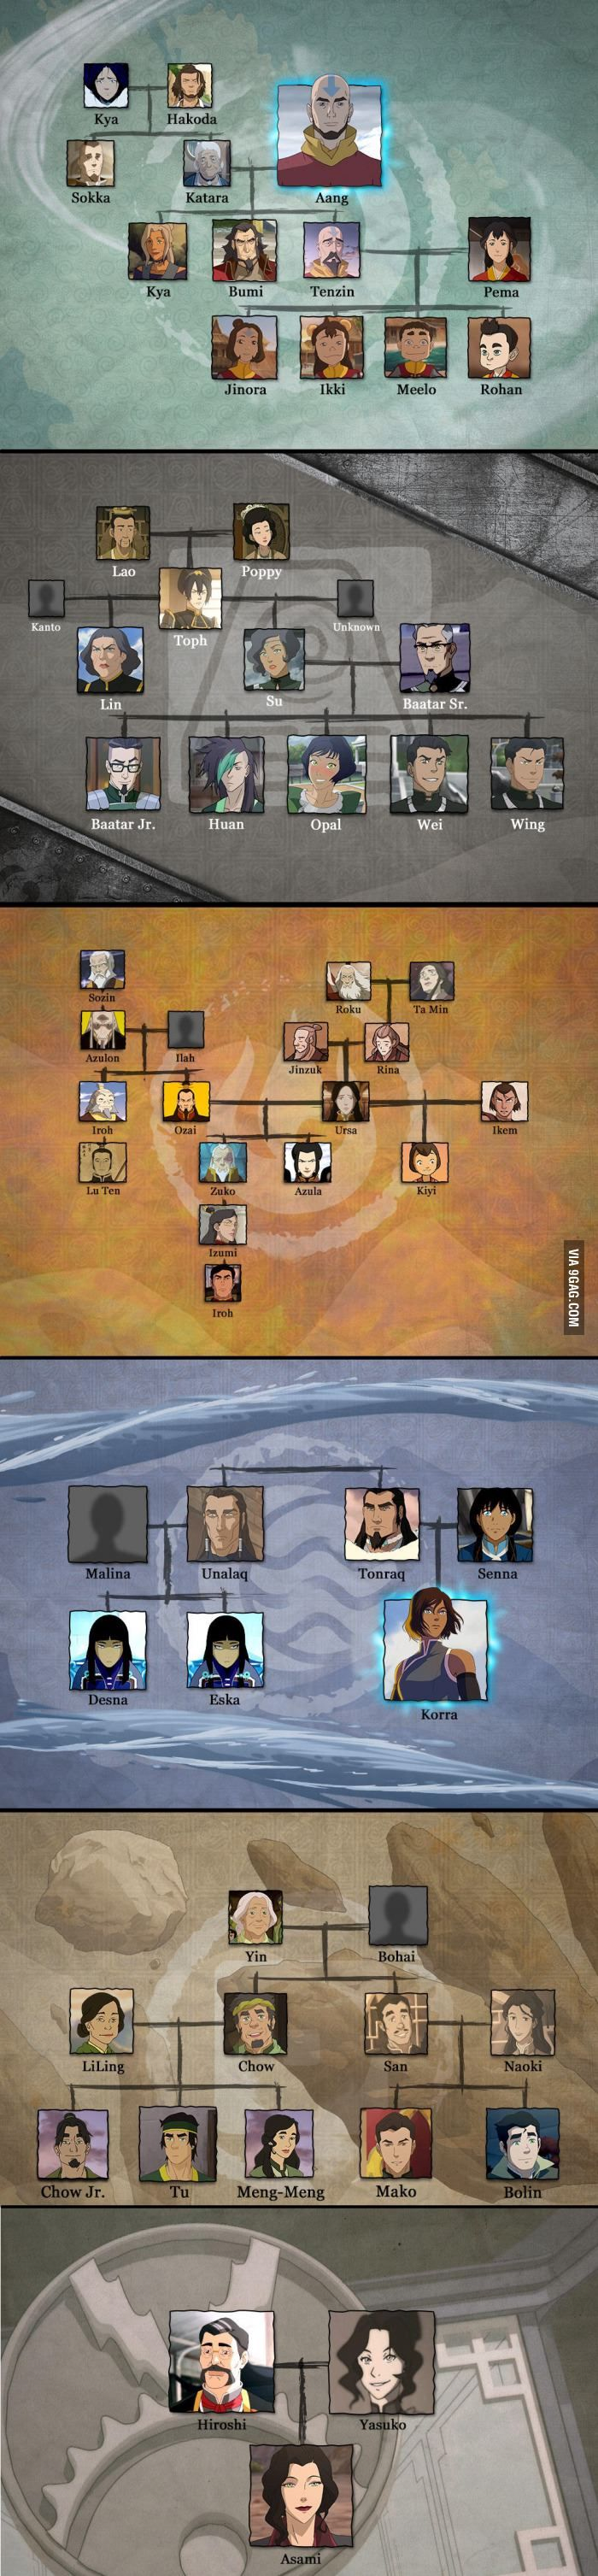 Avatar The Last Airbender Family TreeNo If This Was ATLA Kataras Tree Would Be Bigger Is Legend Of Korra